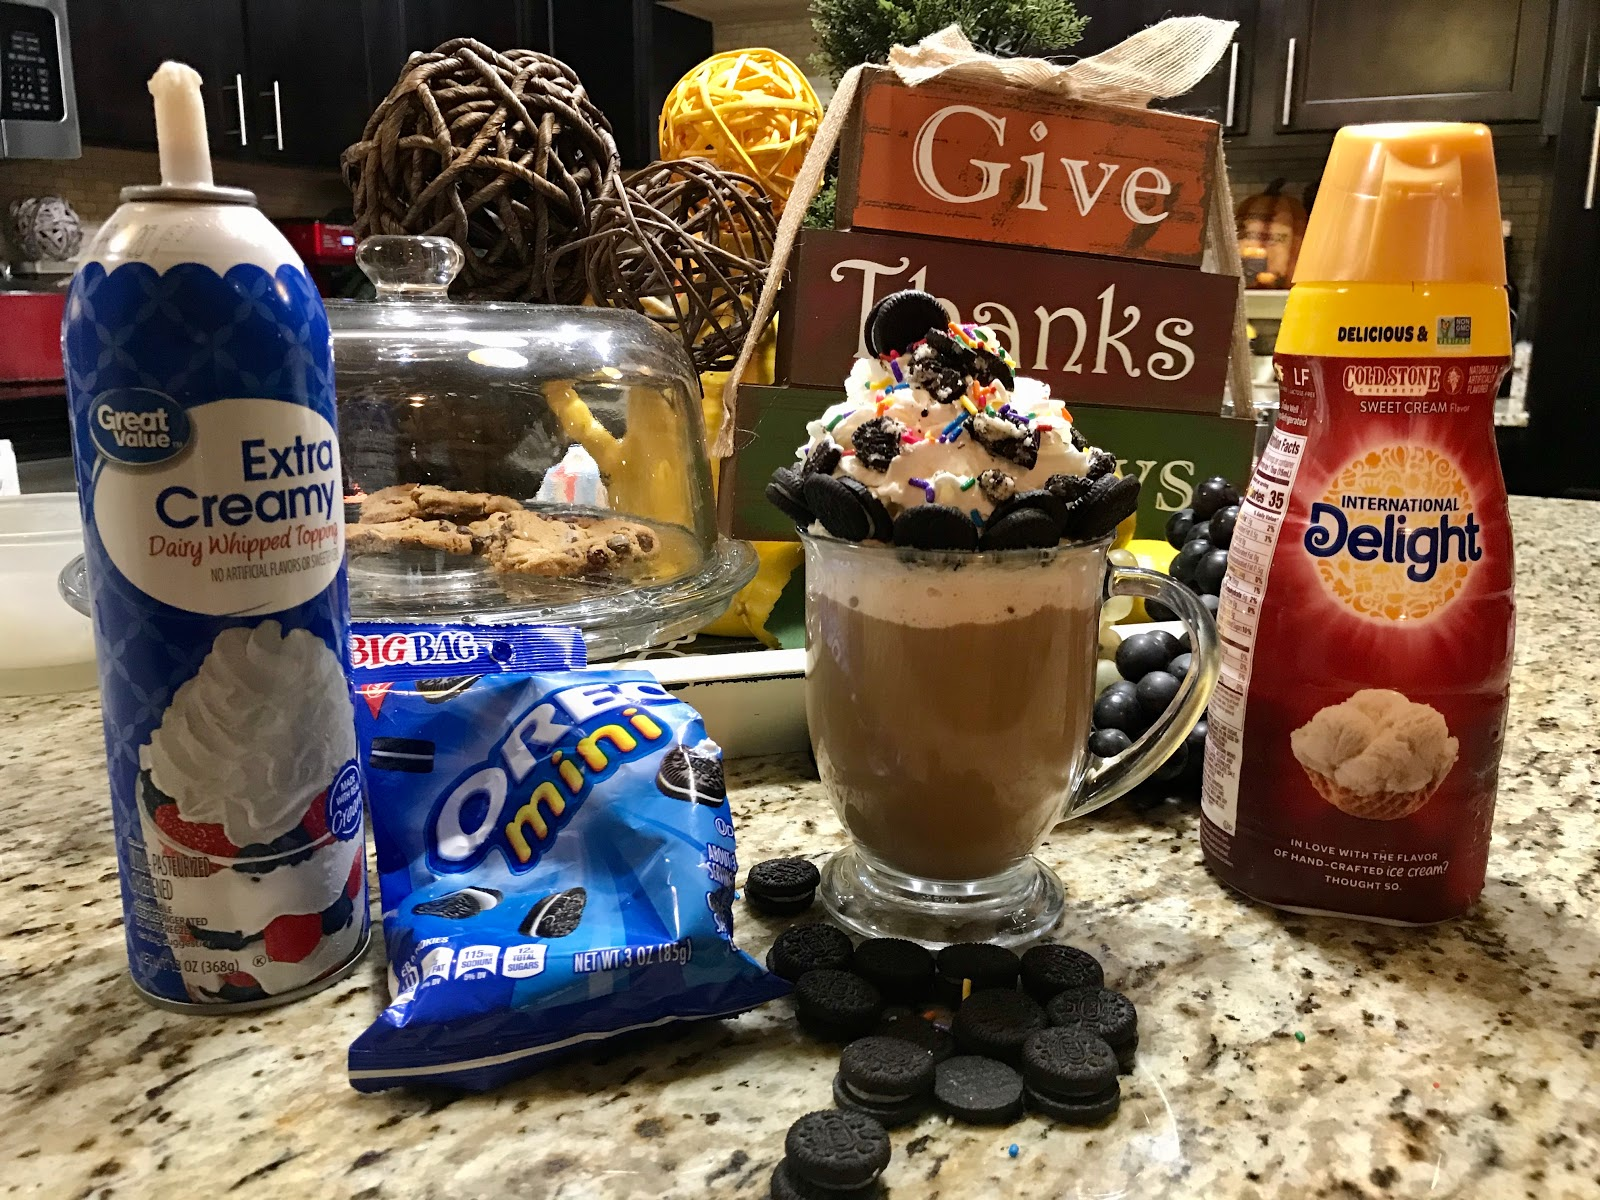 Make These Three Coffees: Do Not Do The Third One - It's Ugly! Recipe oreo cookies, whip cream, stone cold creamer and coffee